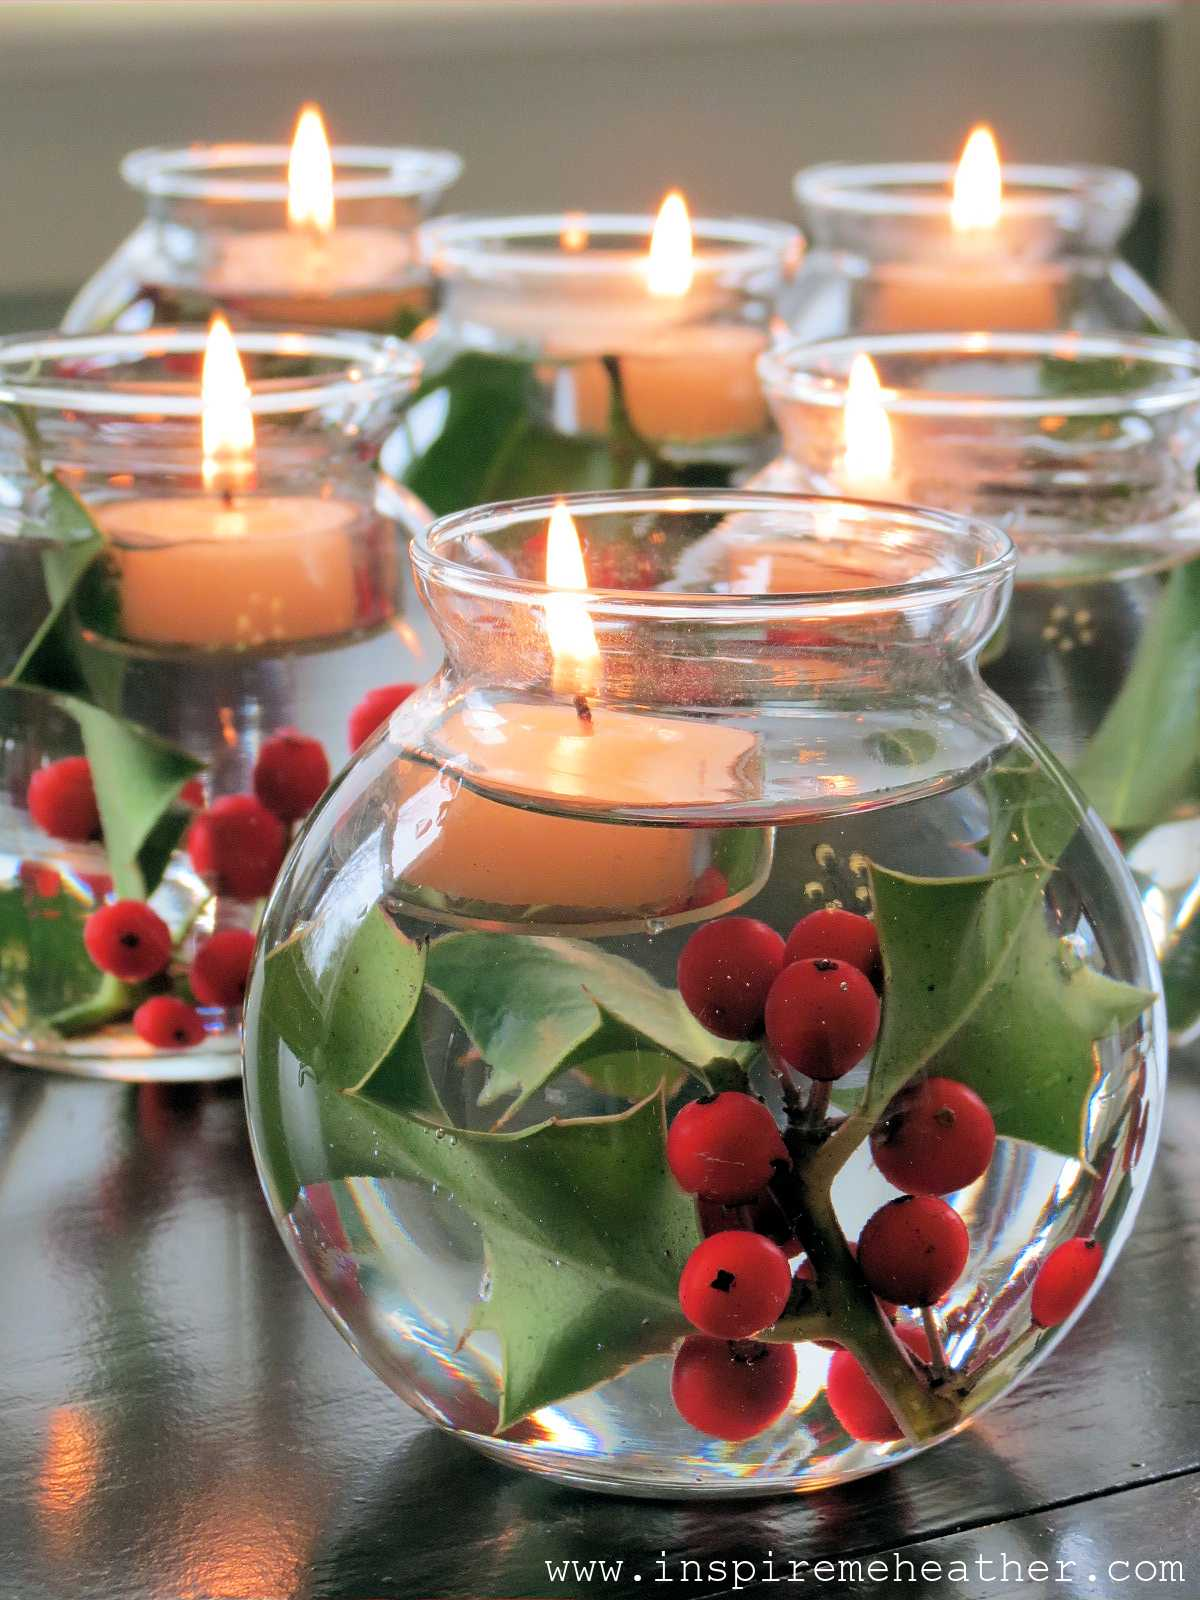 Christmas decoration ideas to make at home - 17 Easy Last Minute Diy Christmas Decorations